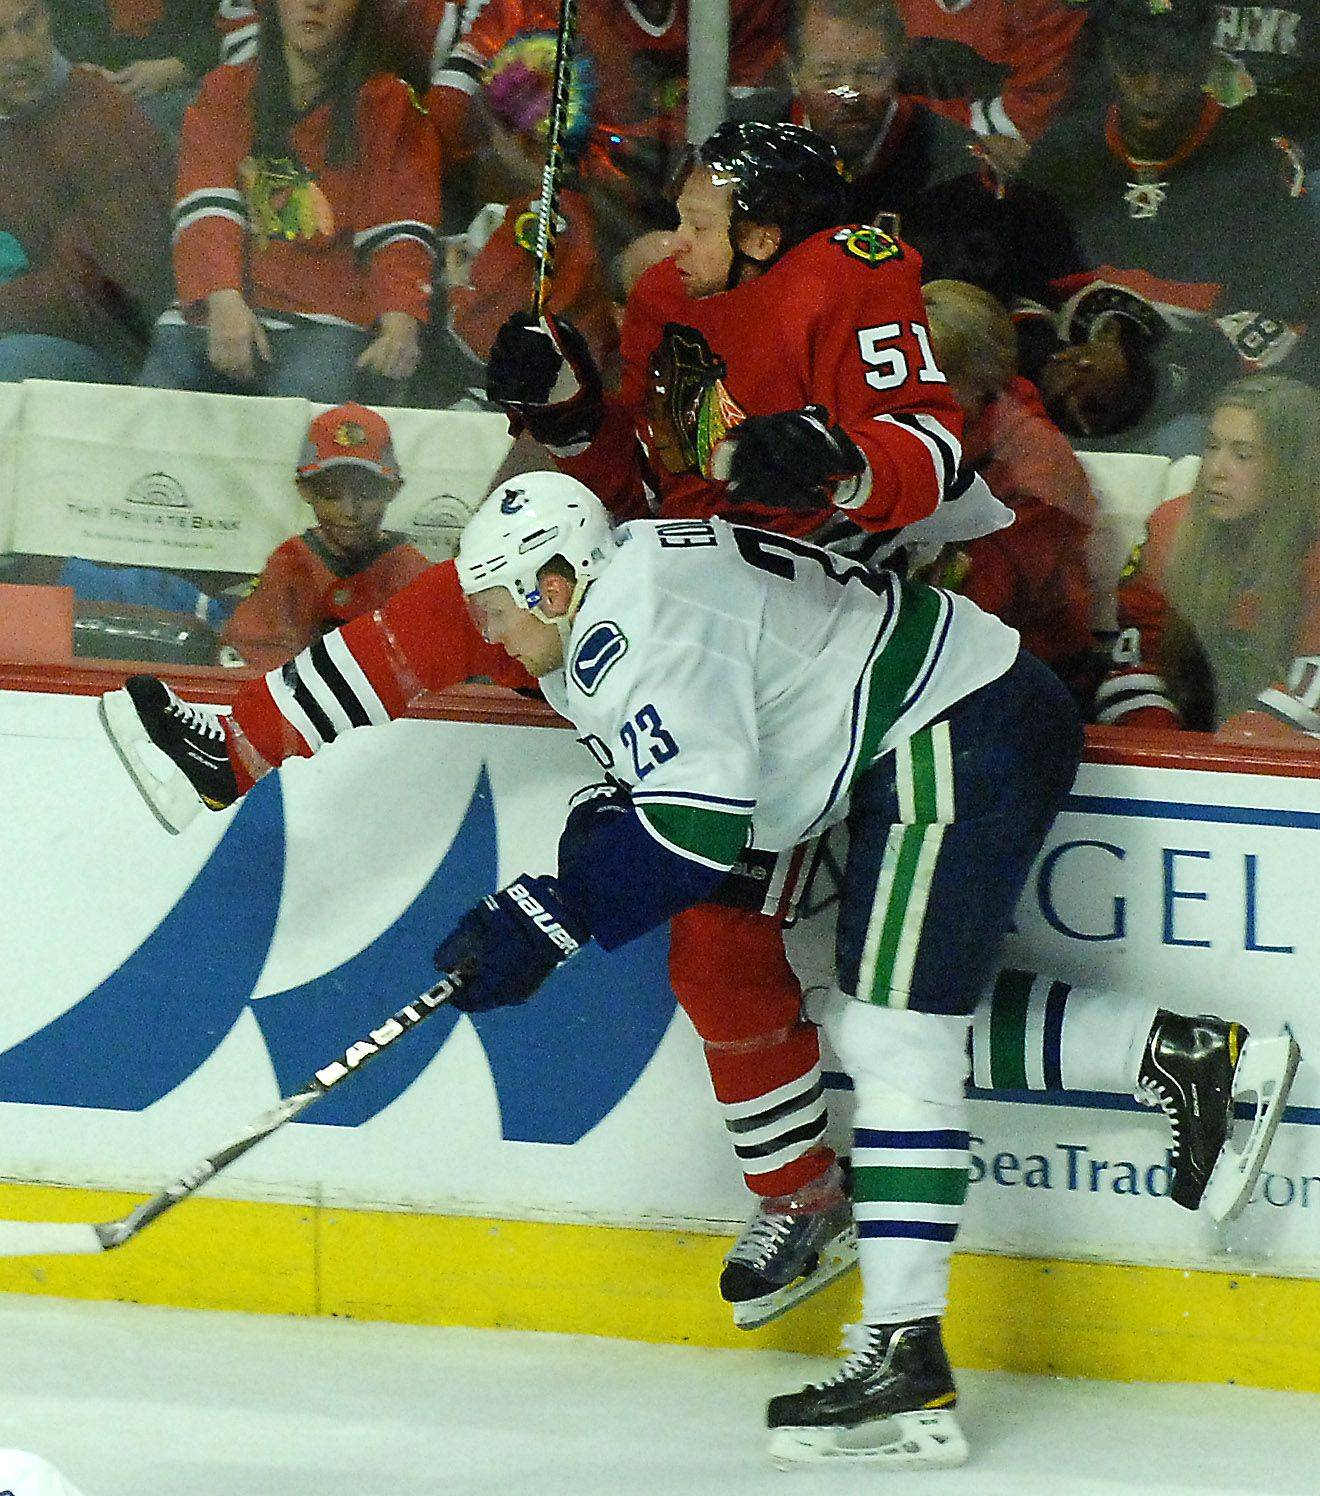 Chicago Blackhawks defenseman Brian Campbell is put into the boards by Vancouver Canucks defenseman Alexander Edler.